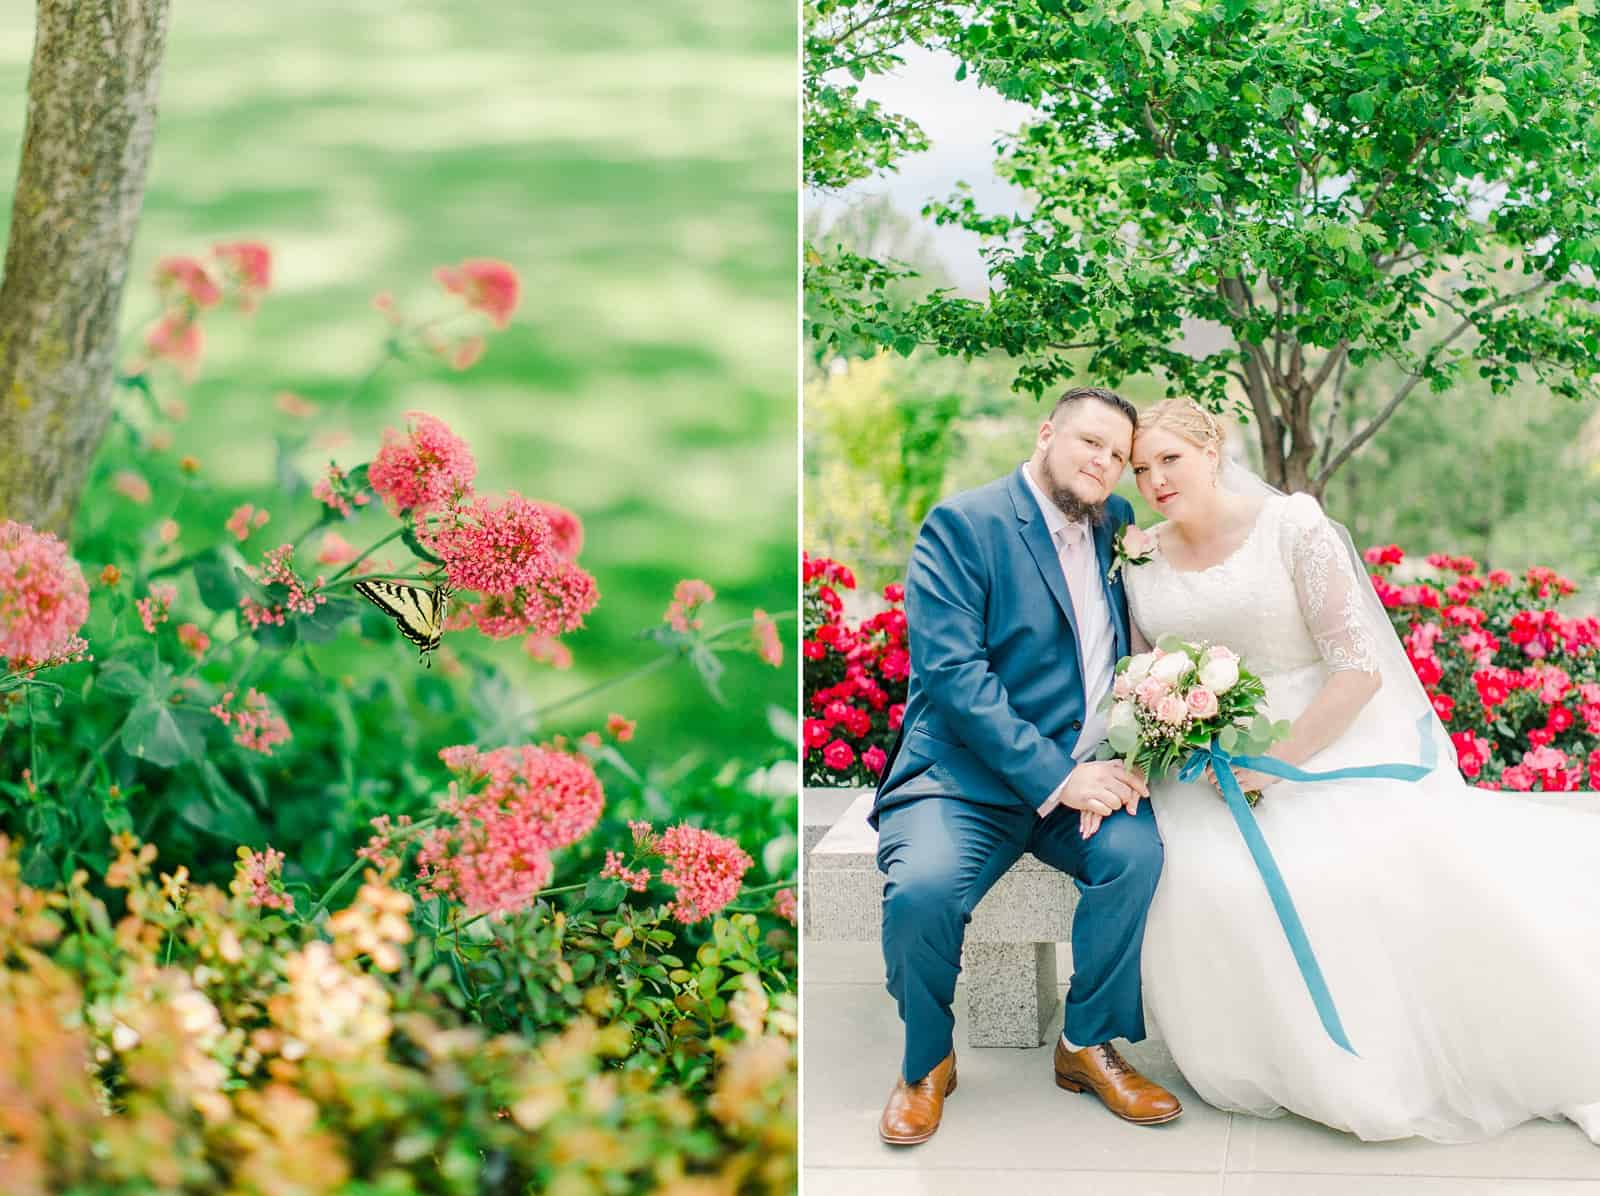 Draper LDS Temple Wedding, Utah wedding photography, summer backyard wedding, bride and groom, pink and rose bouquet with blue ribbon, flower butterfly